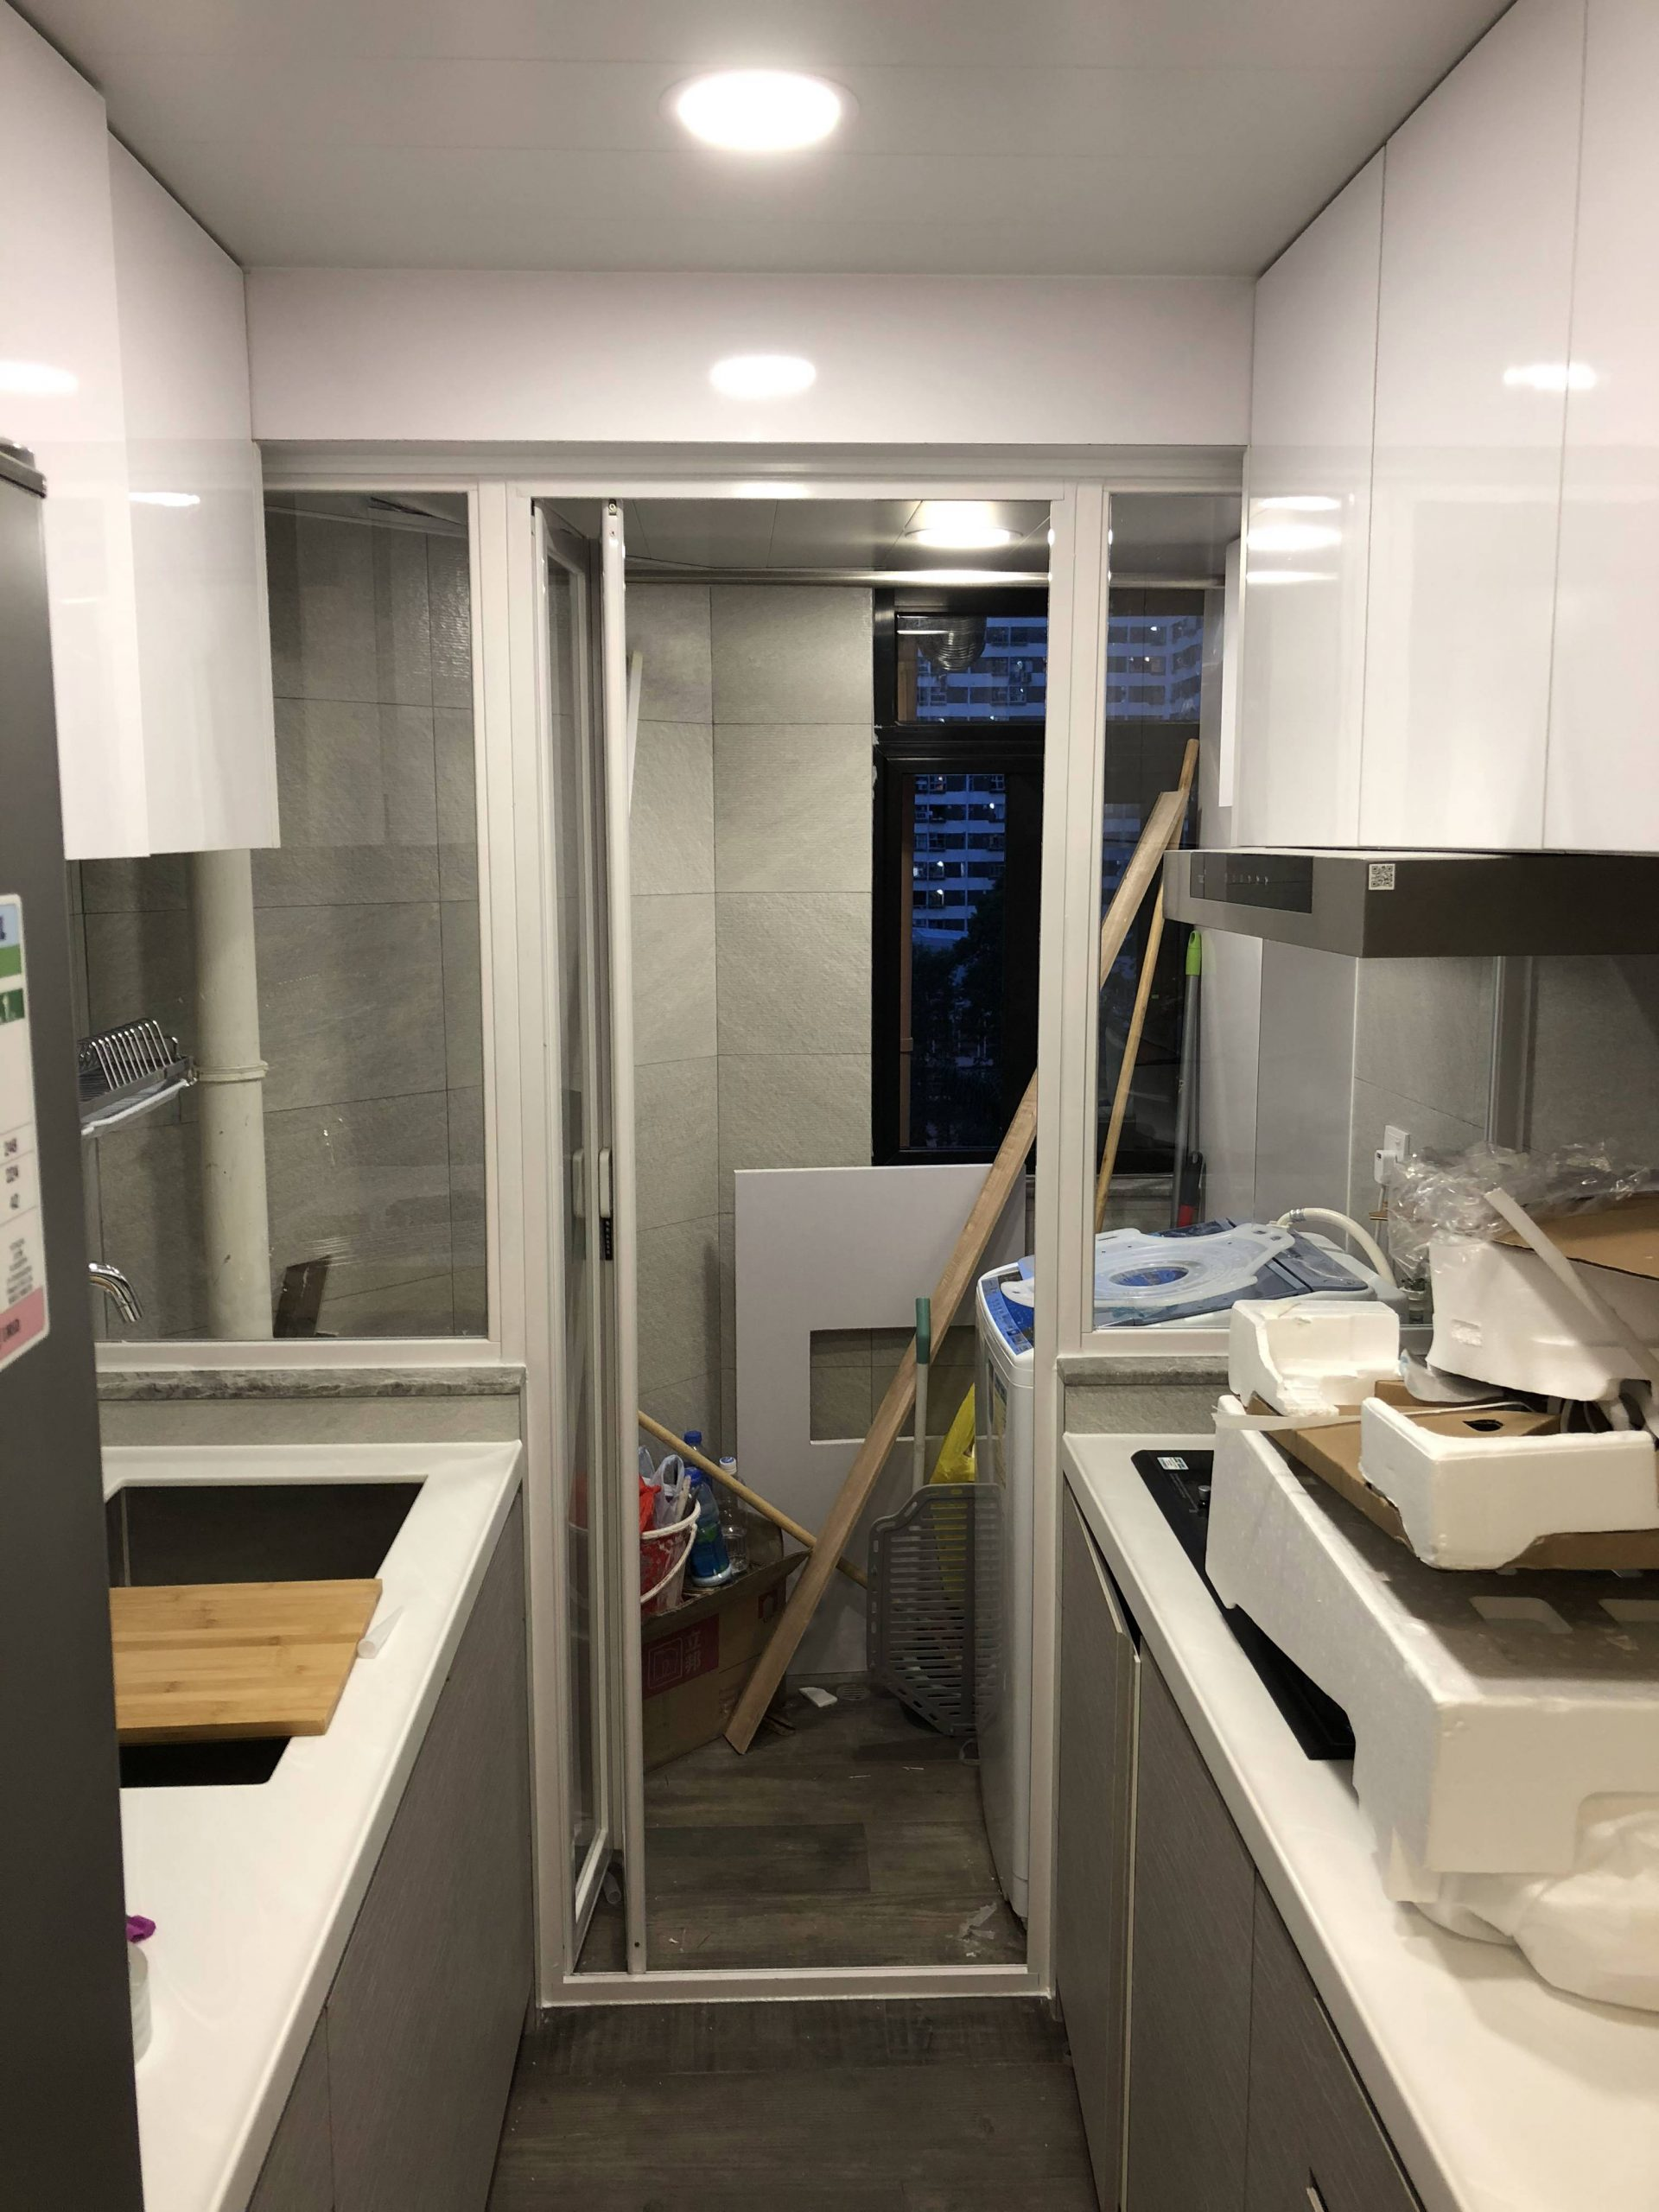 <p>Glass Partition between Cooking and Laundry Area (Opened)</p>